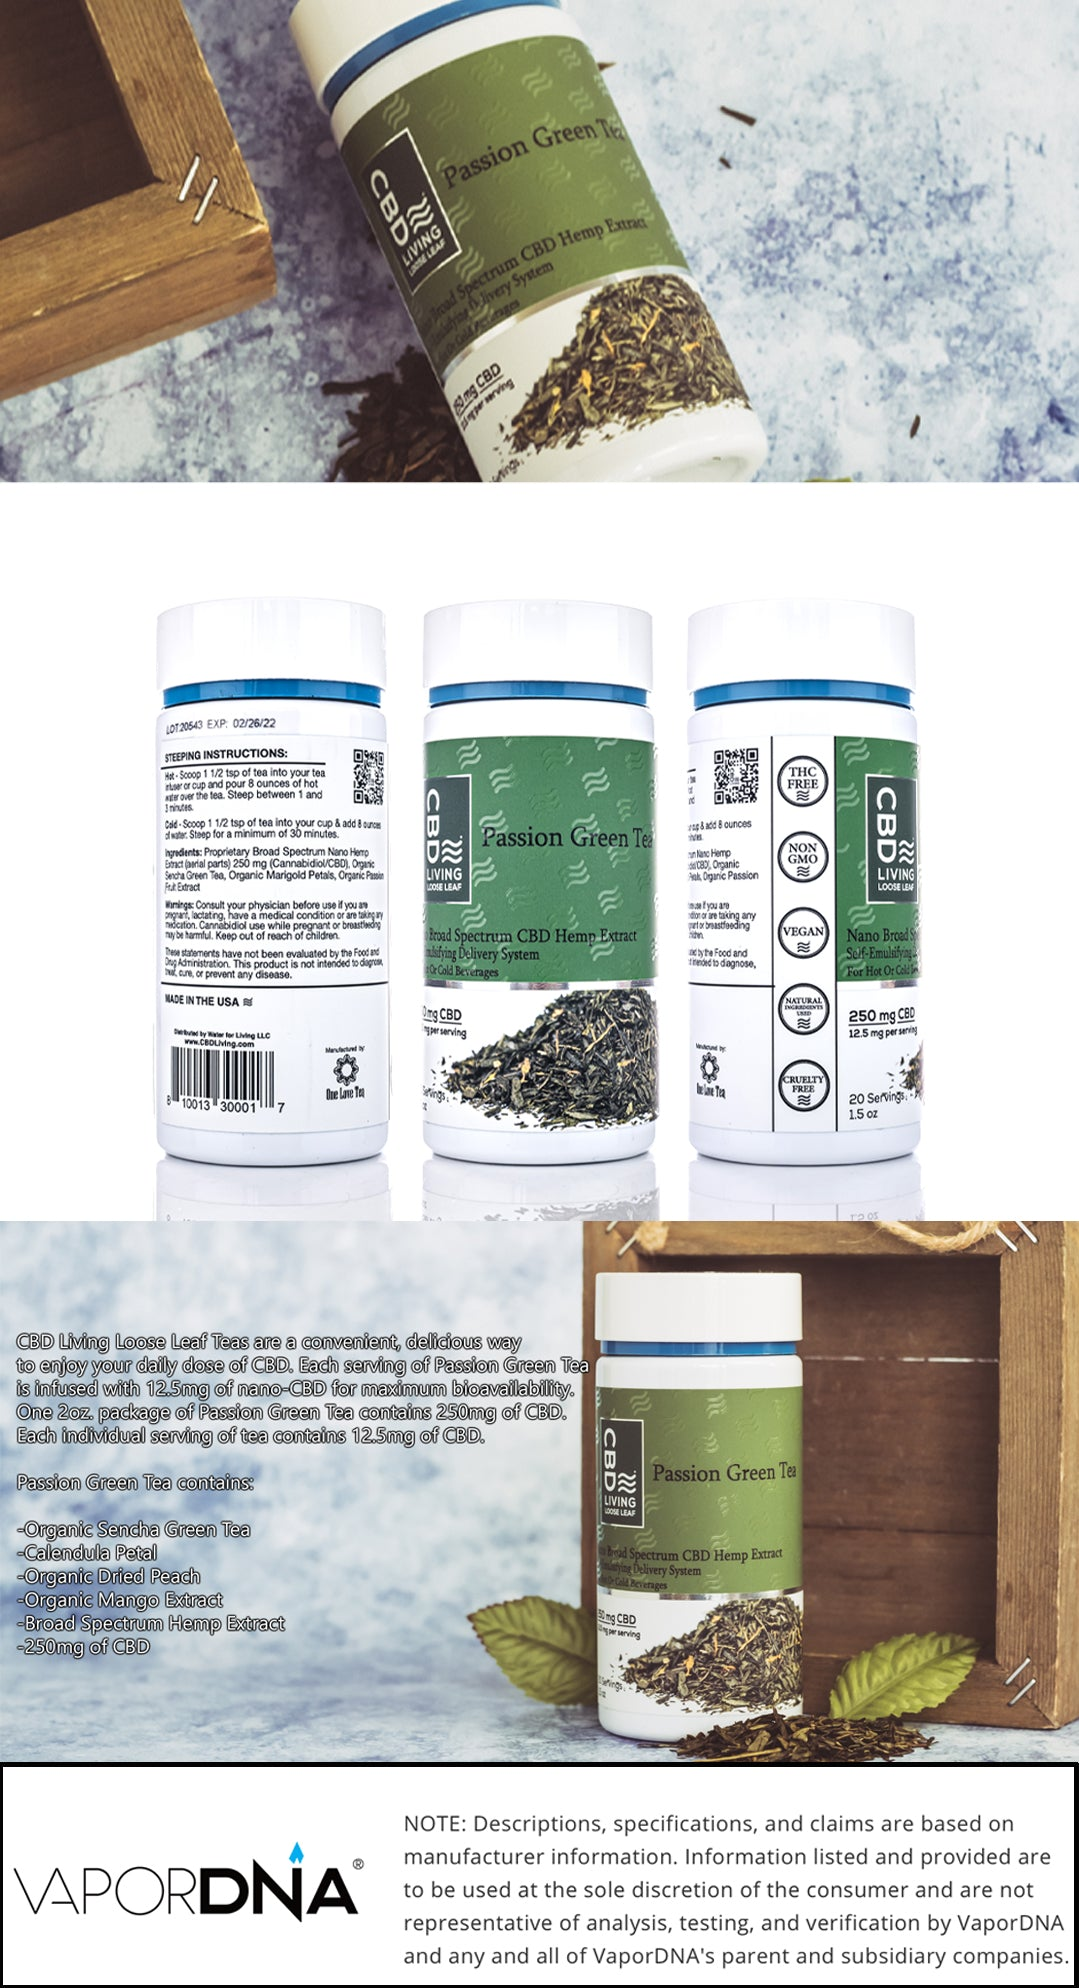 cbd living loose leaf tea